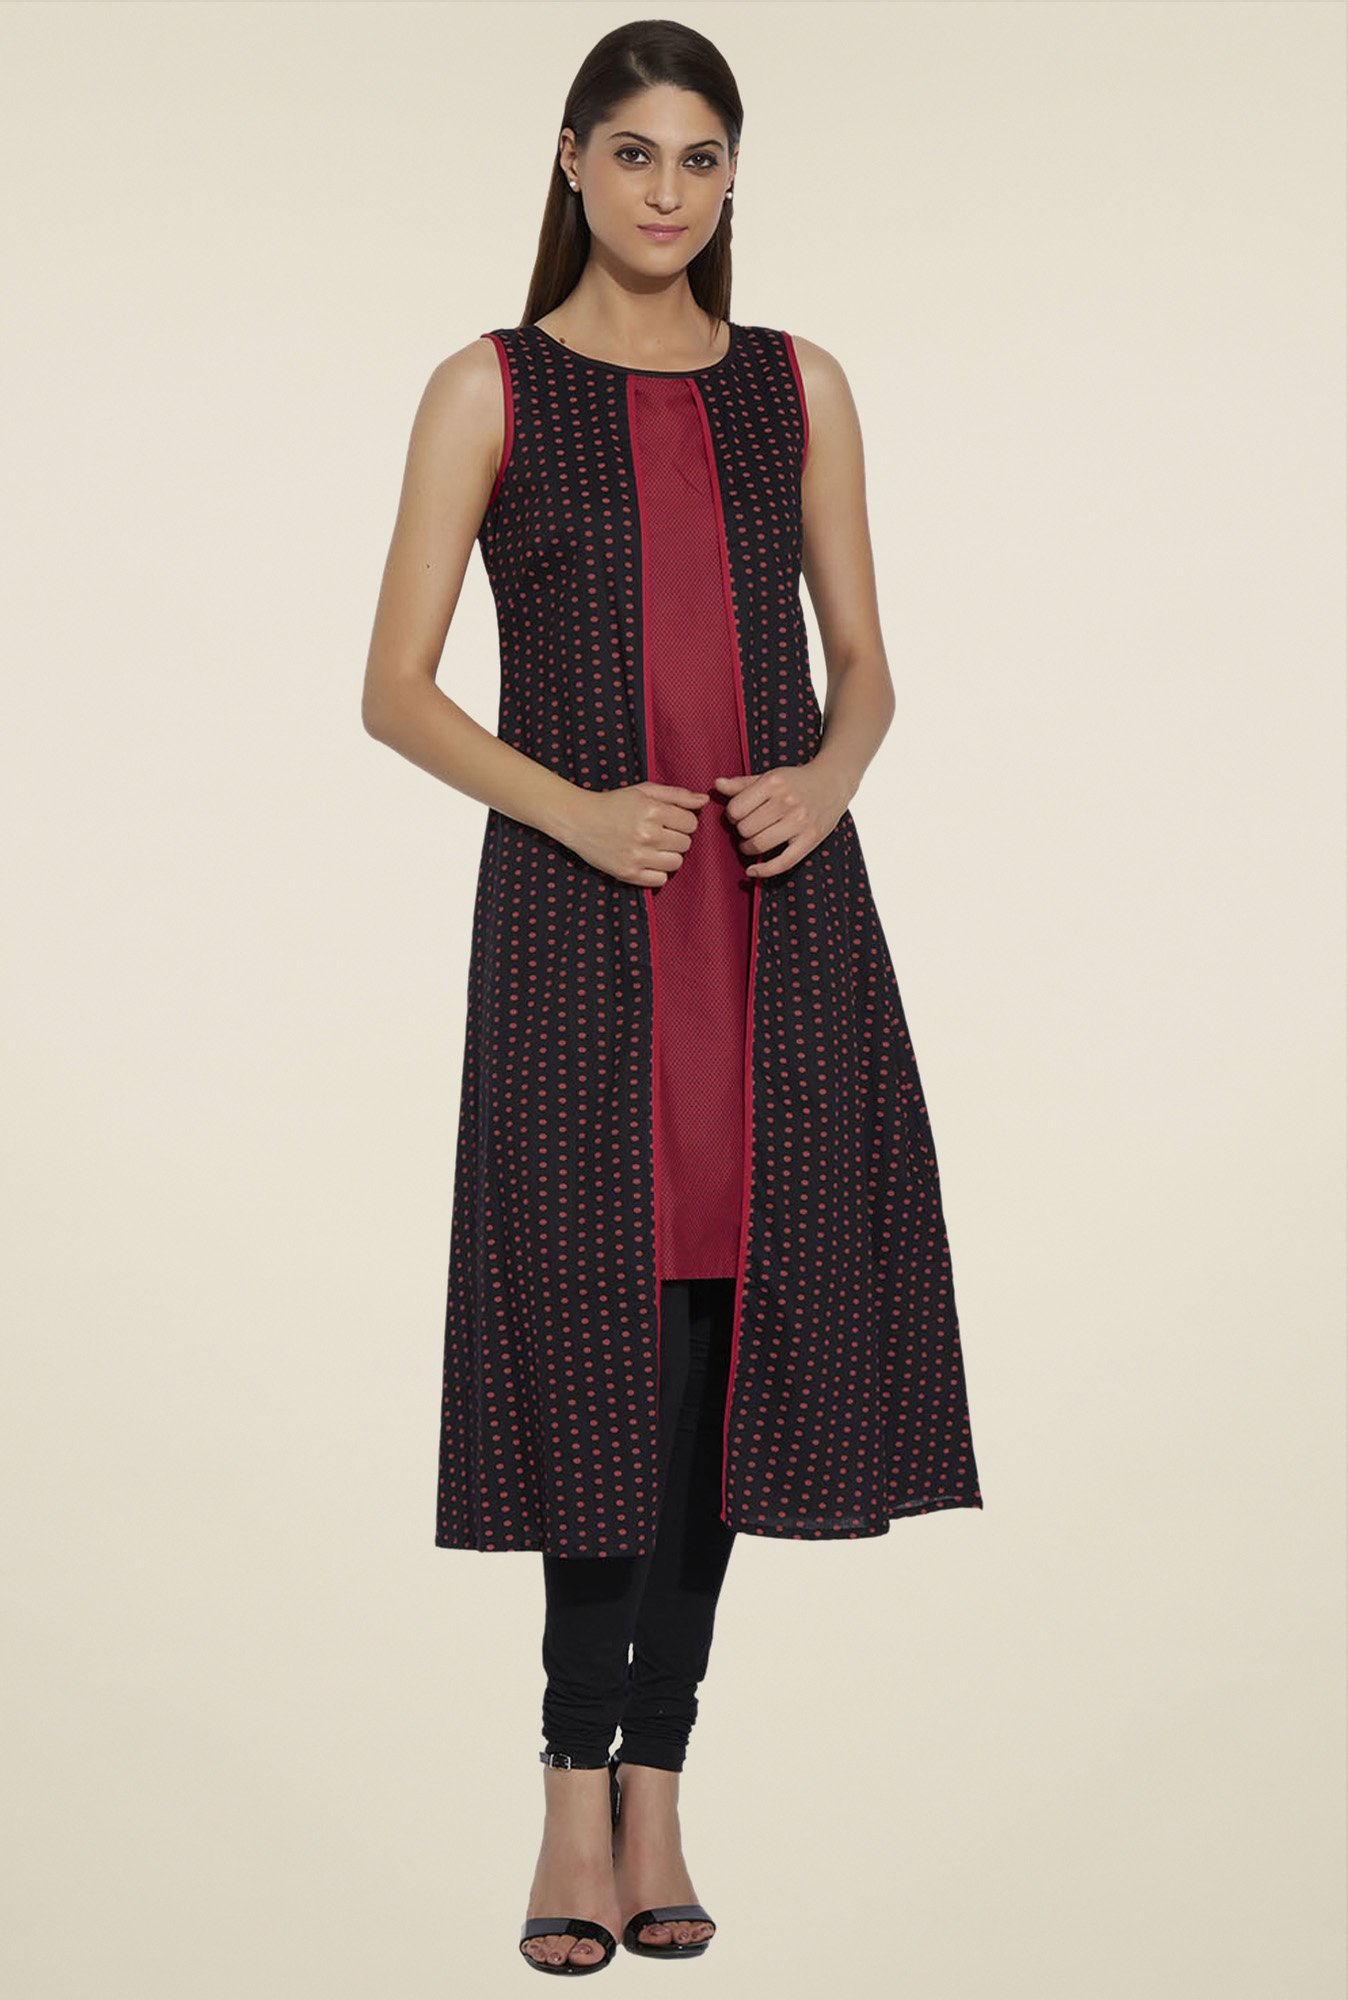 Globus Black & Red Sleeveless Cotton Kurta